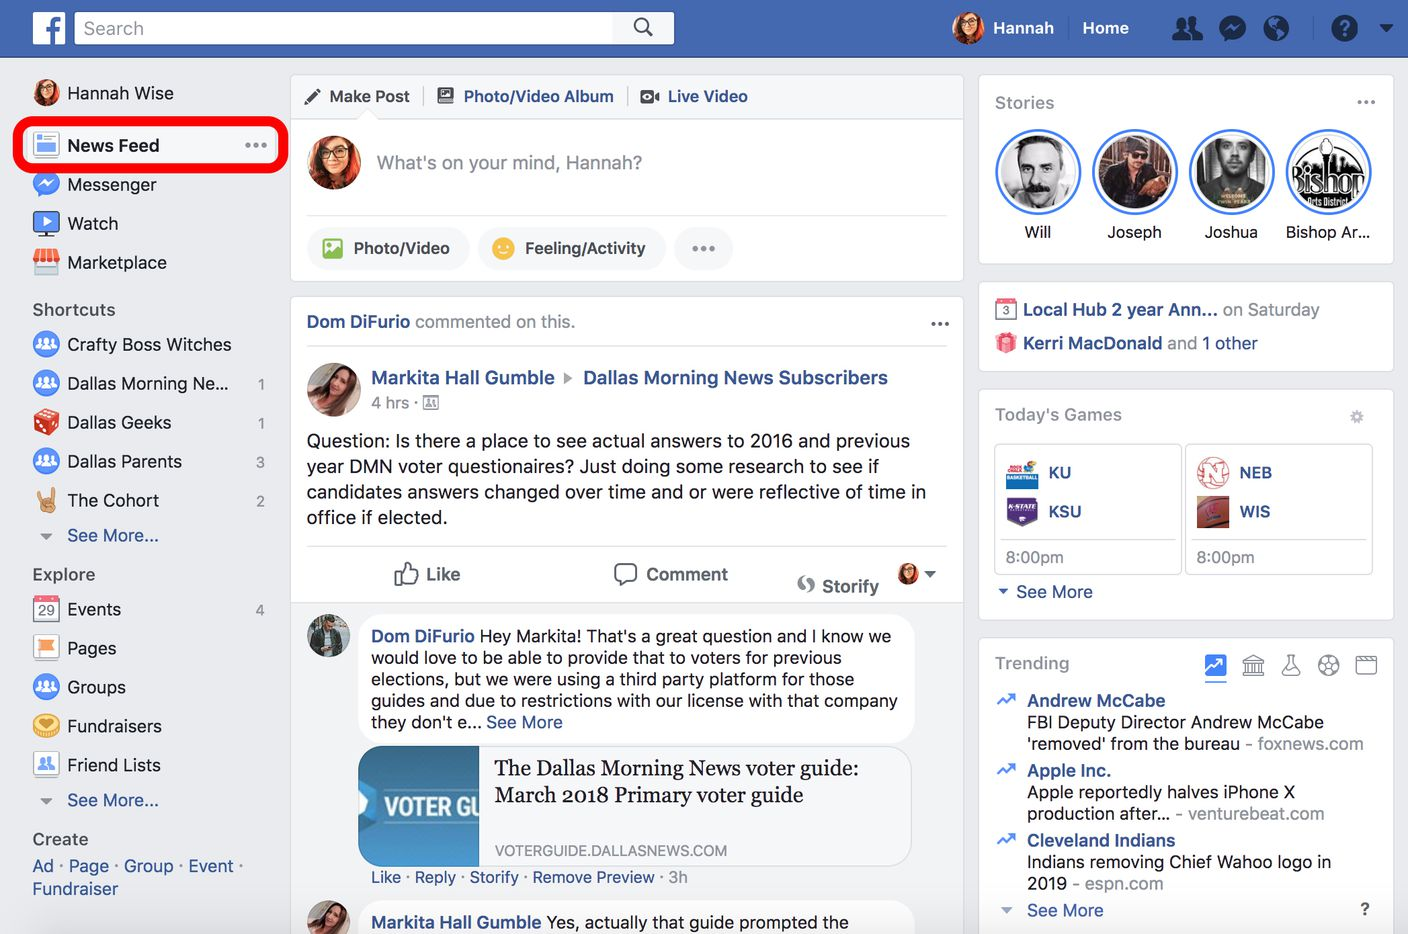 Log into Facebook. In the left-hand column of your home screen, look for 'news feed' at the top of the list and click the three dots beside it.